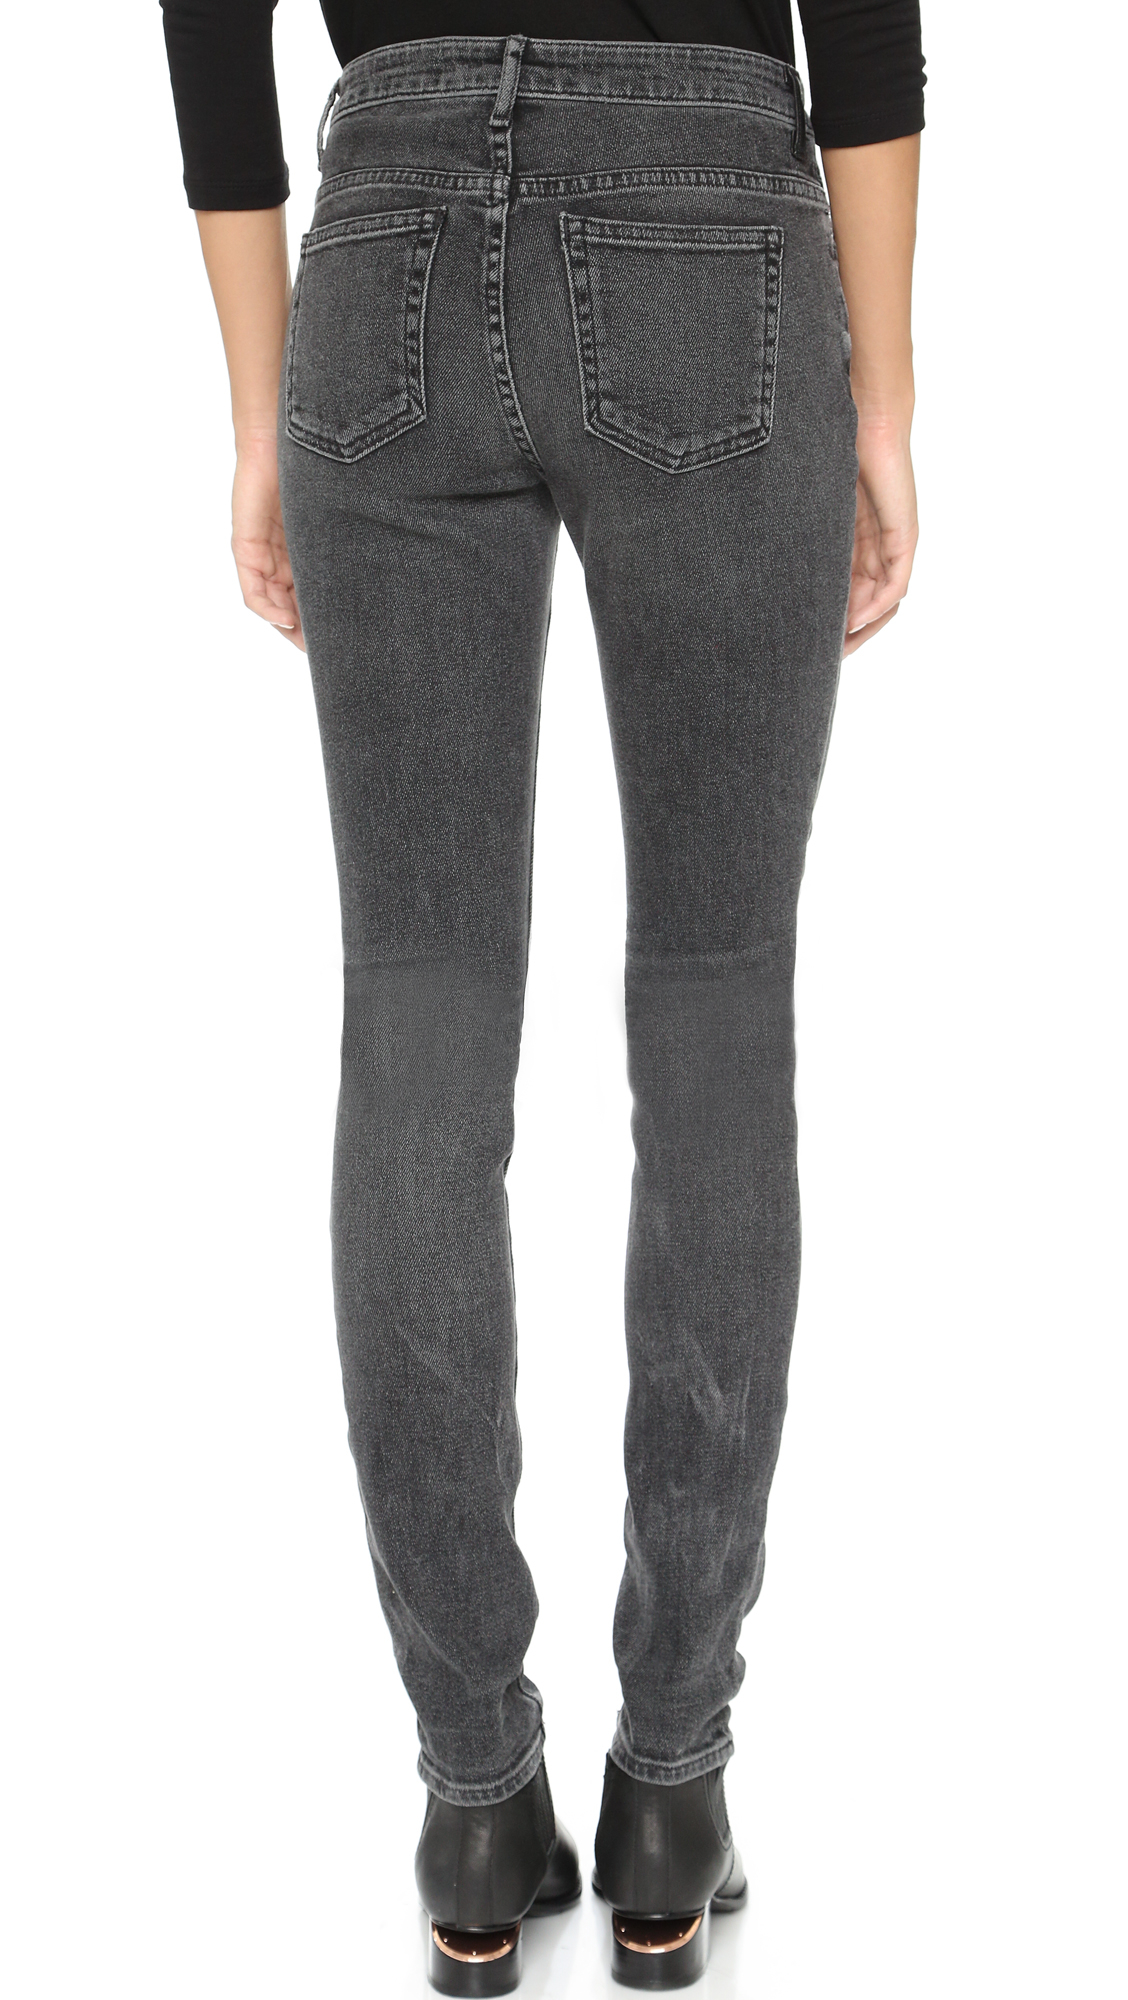 eba60e0d8a16 Lyst - Alexander Wang 001 Slim Fit High Rise Jeans in Gray